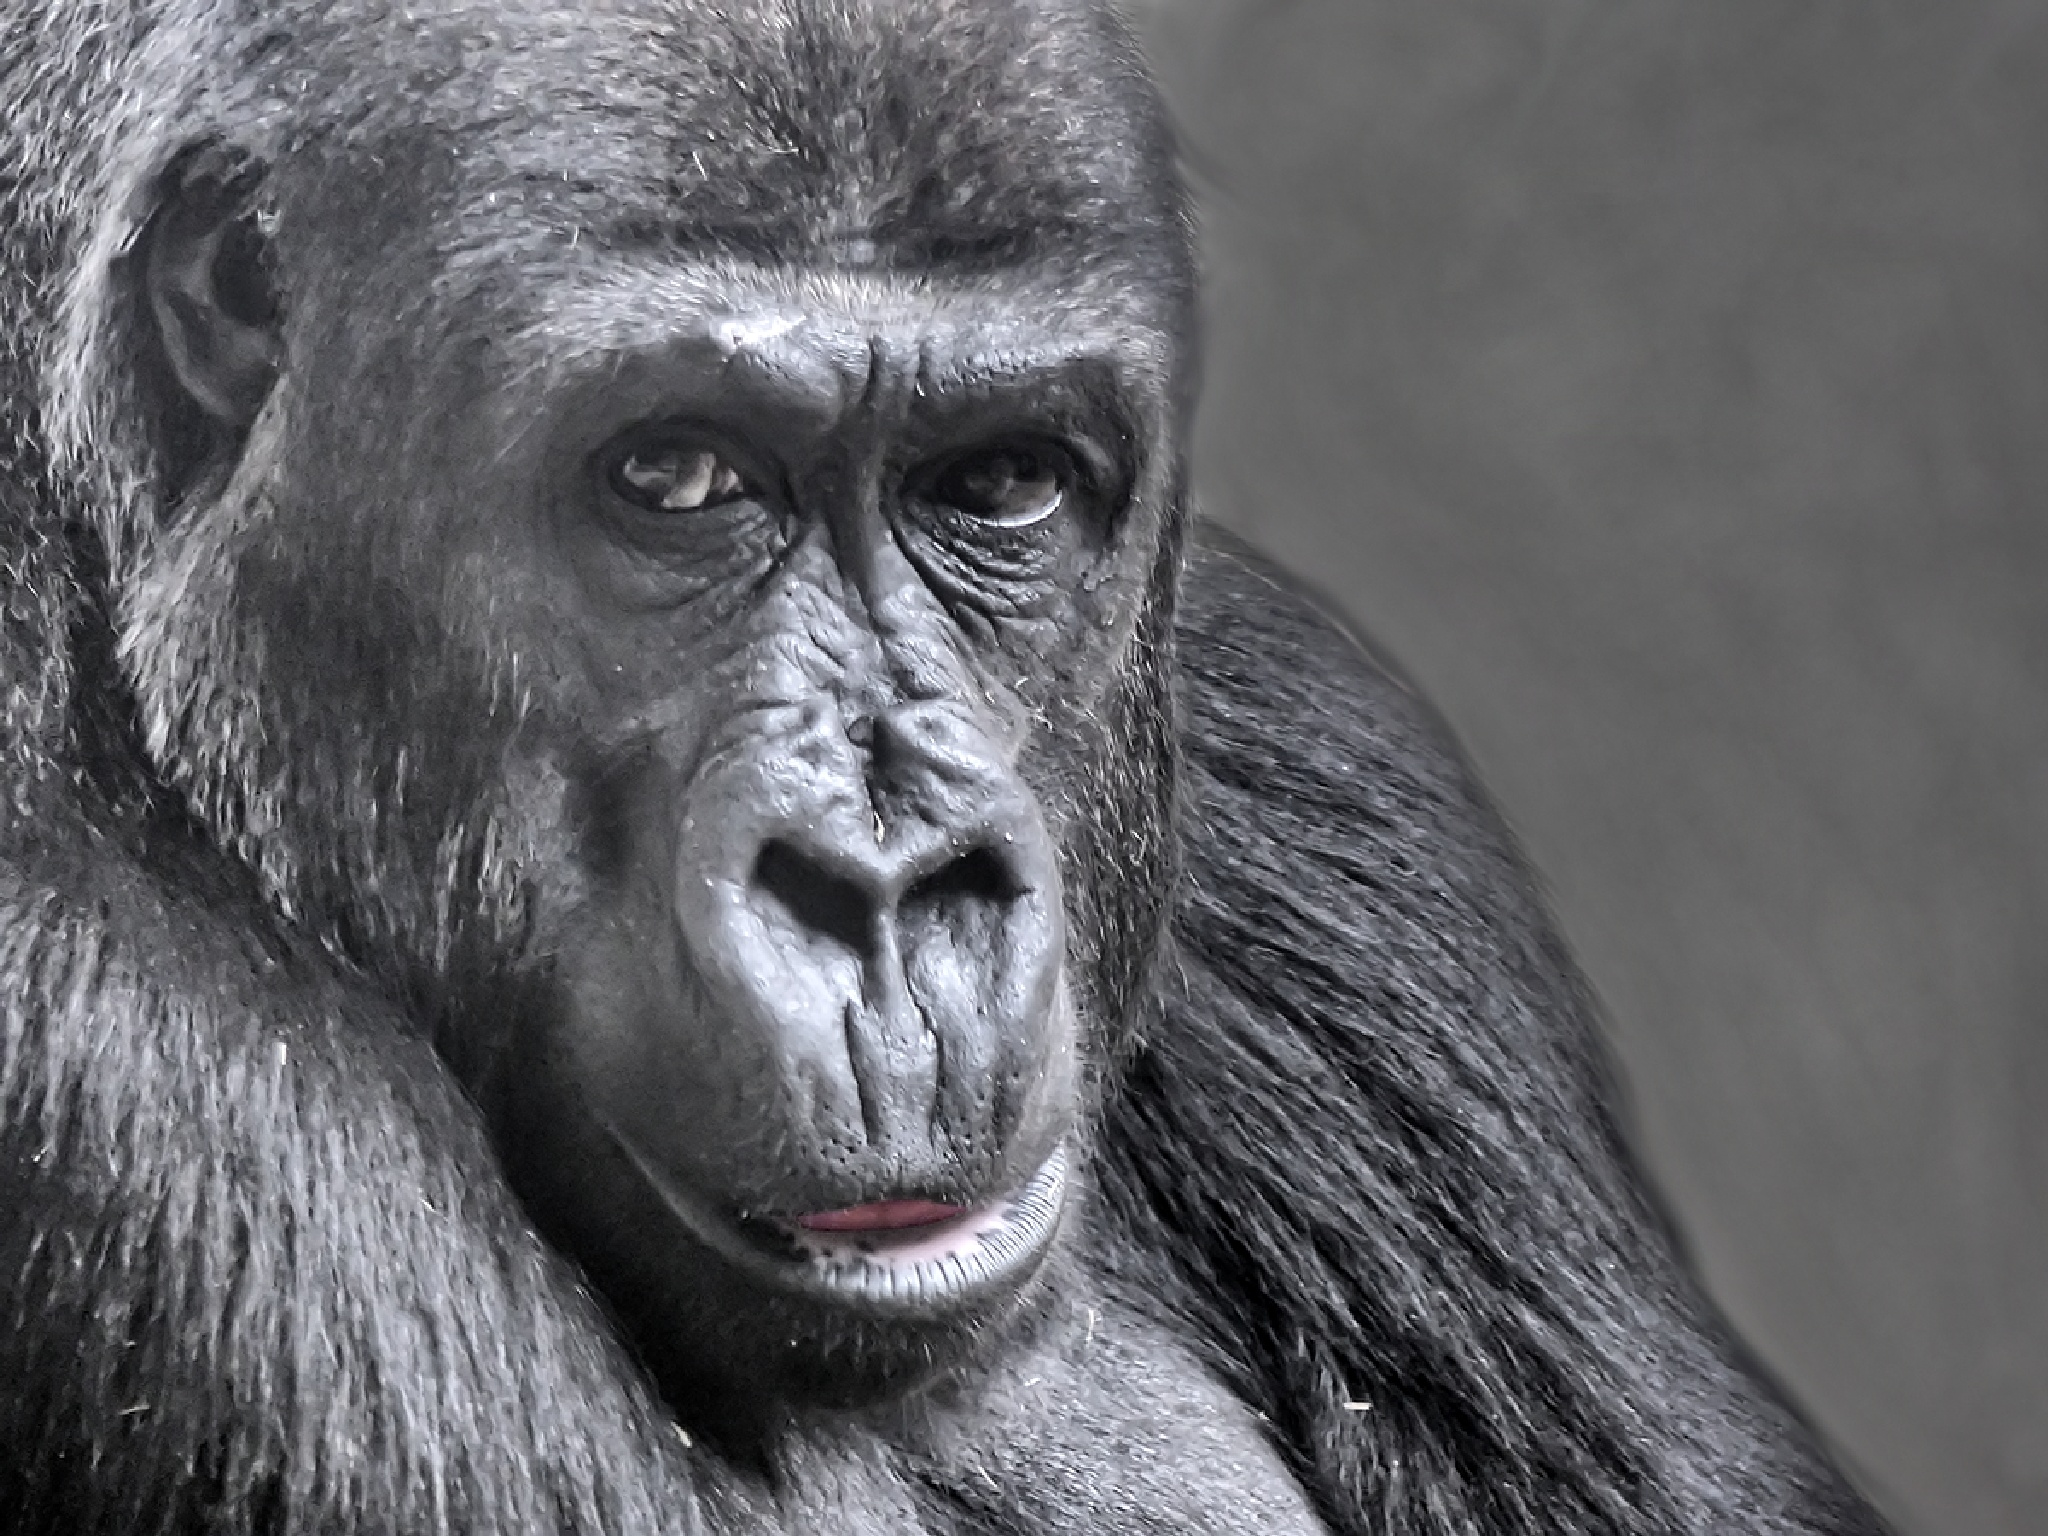 Amsterdam Zoo Gorilla by mgeier